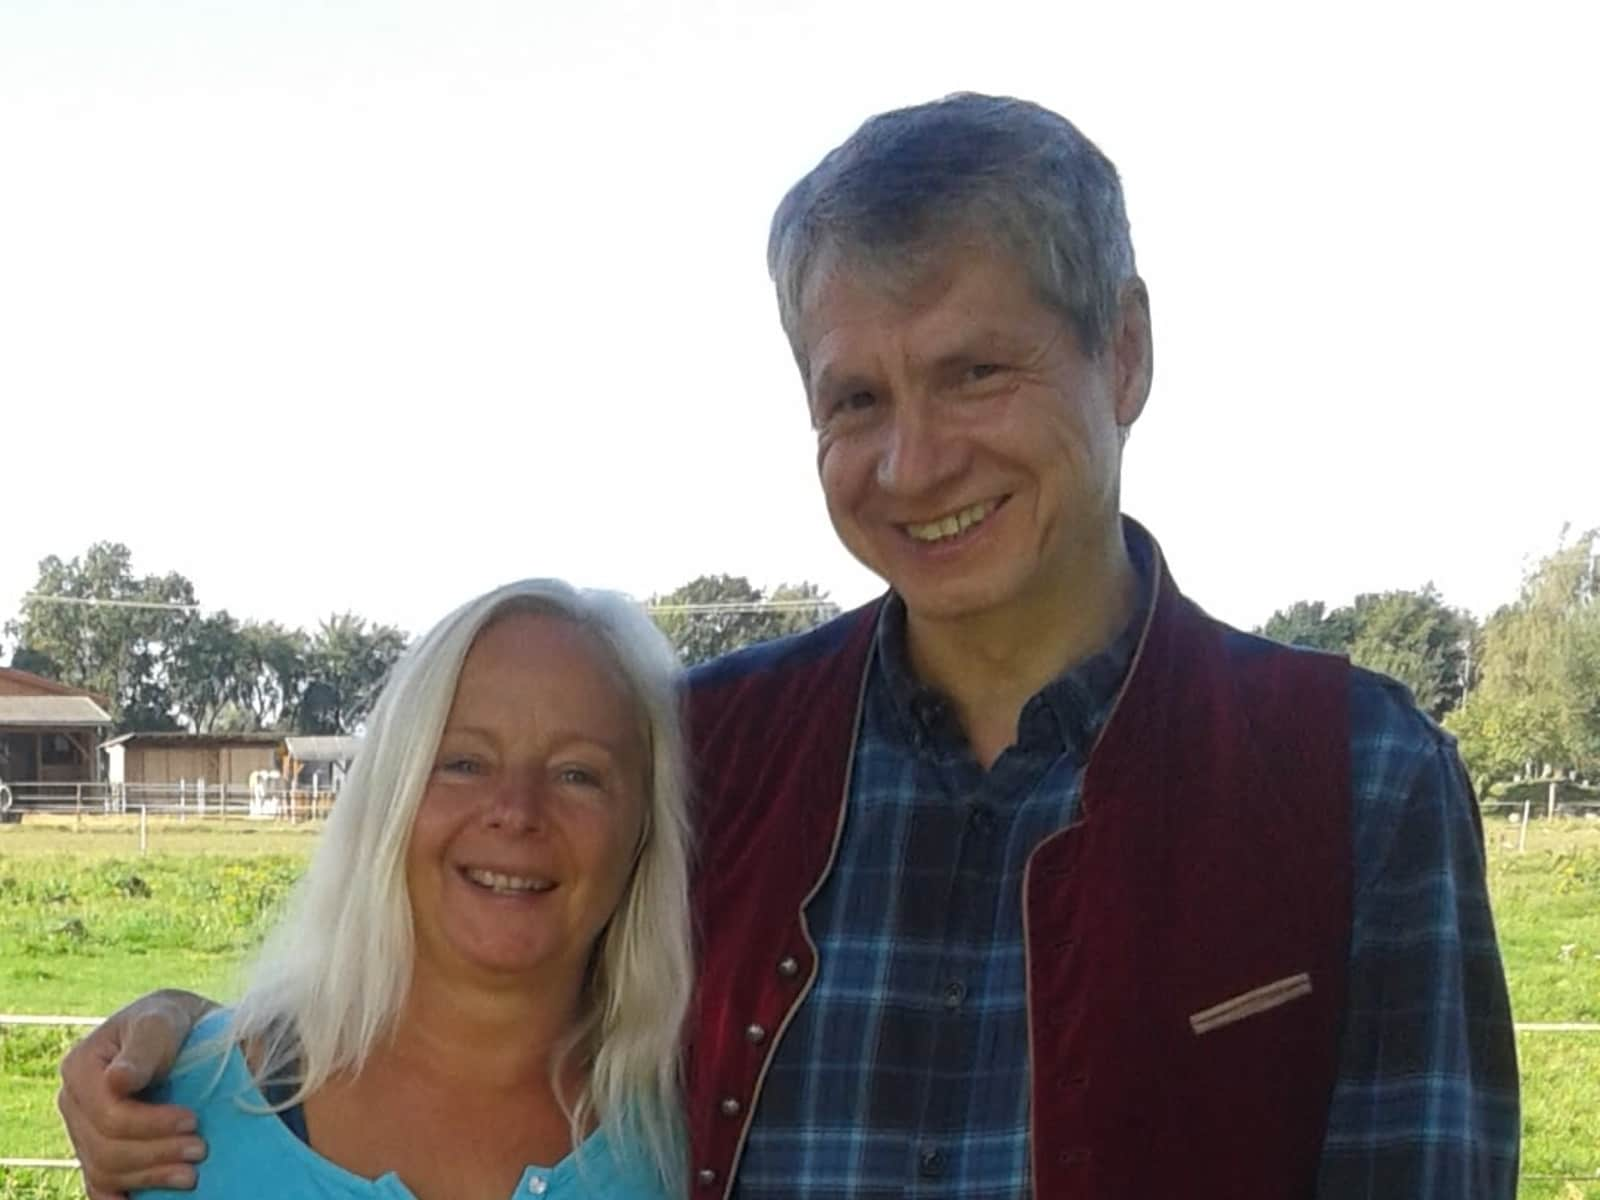 Ursula & Thomas from Hannover, Germany